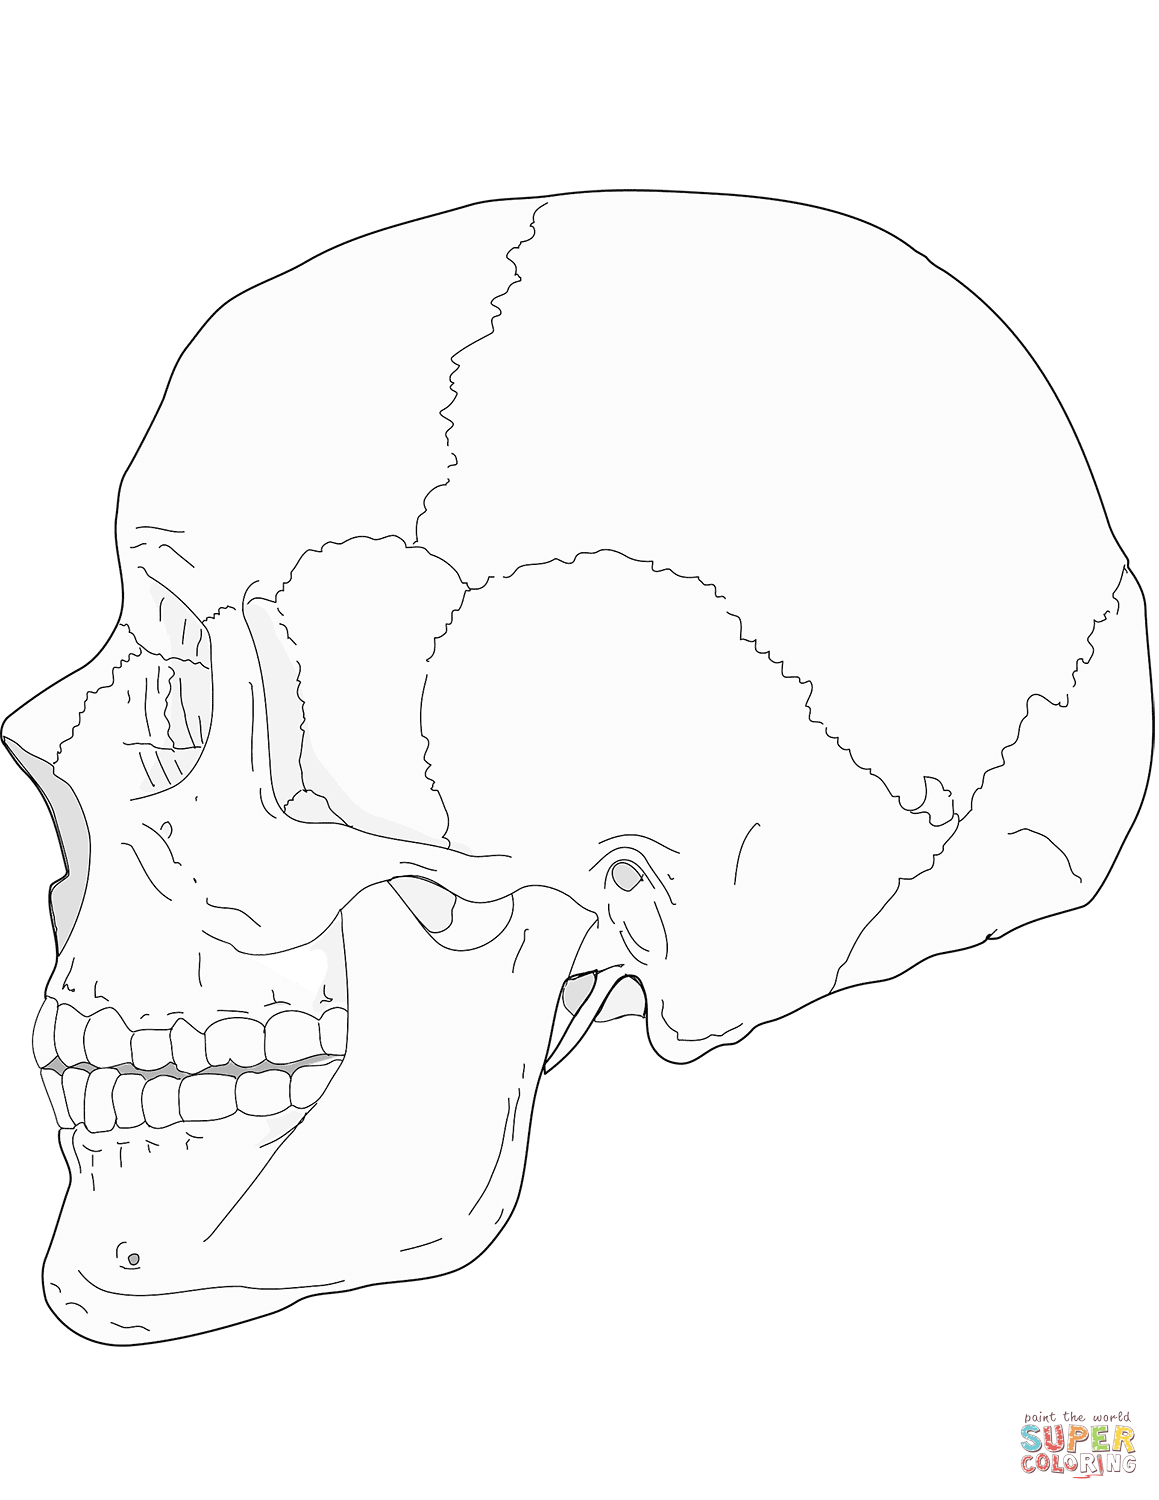 Human Skull Side View Coloring Page From Anatomy Category Select From 29189 Printable Crafts Of Cartoo Human Skull Anatomy Skull Anatomy Human Anatomy Drawing